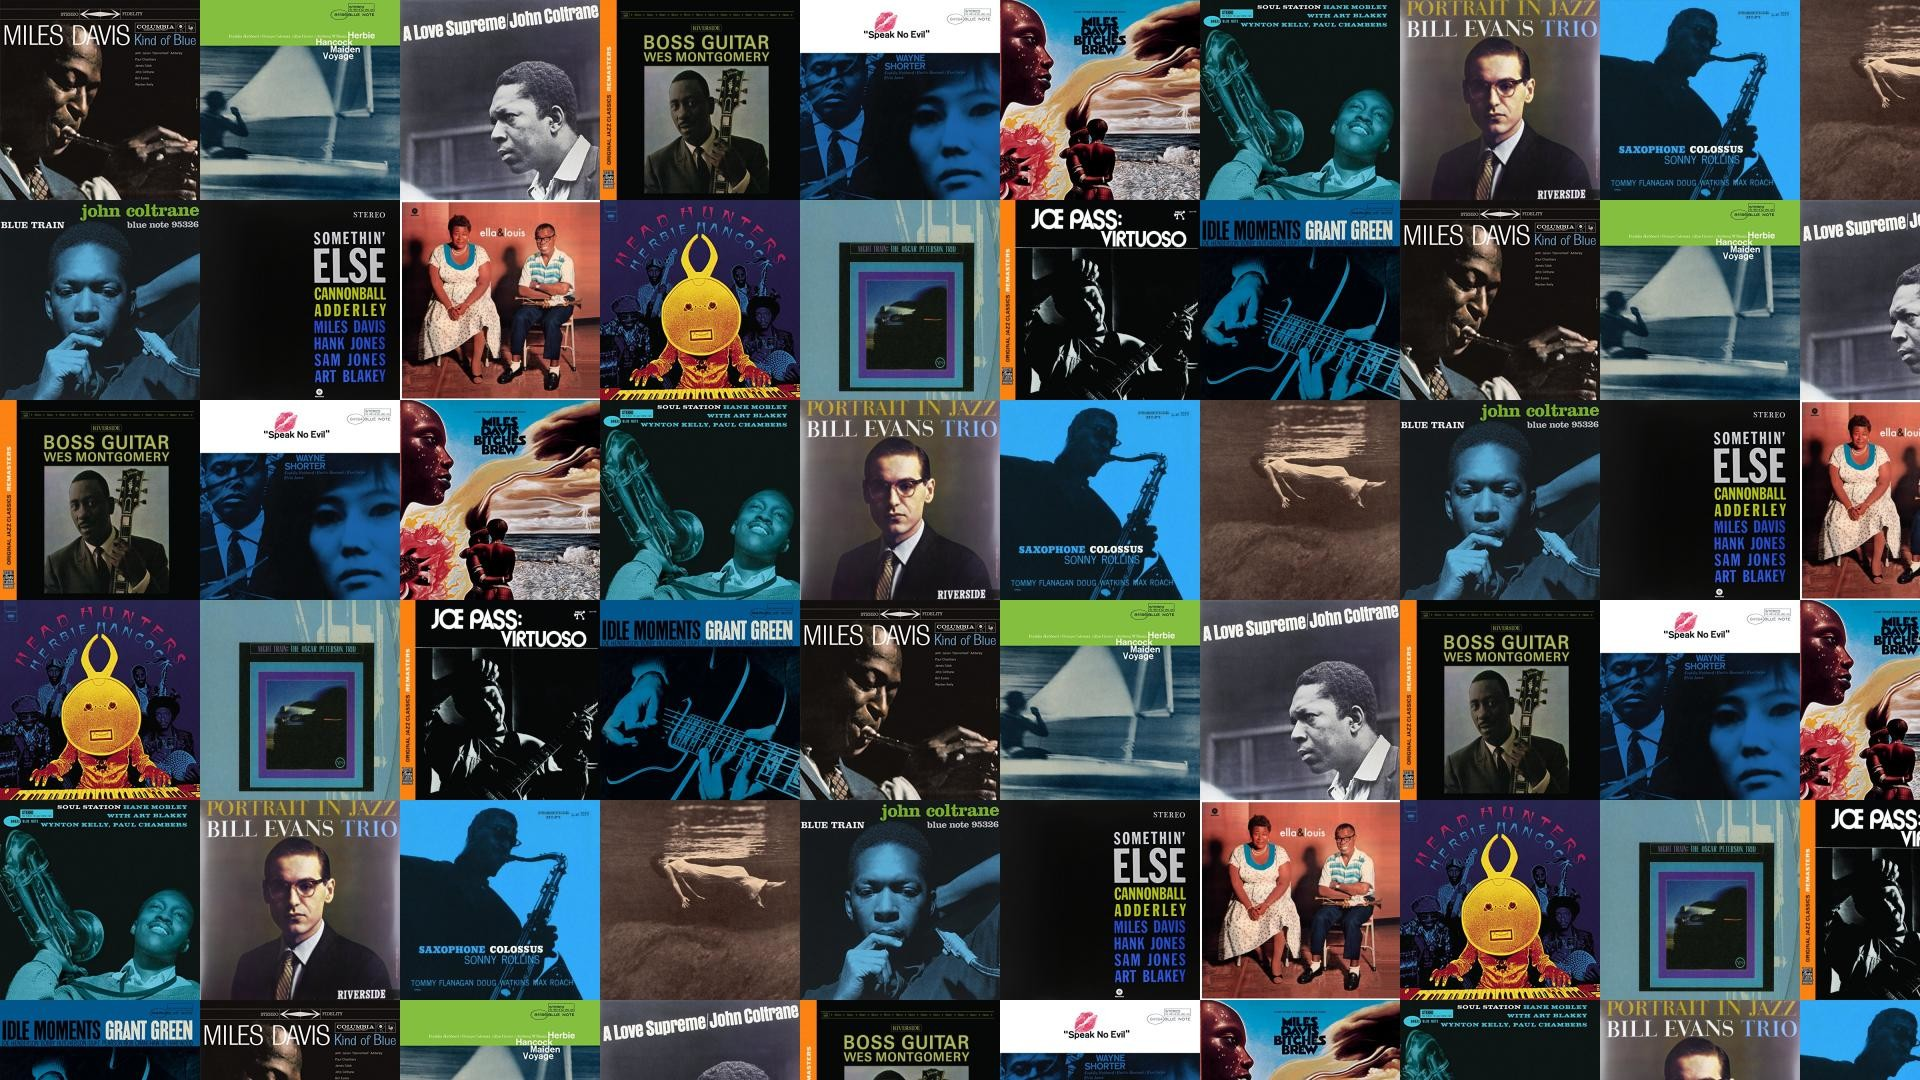 Res: 1920x1080, Miles Davis Herbie Hancock John Coltrane Wallpaper Â« Tiled Desktop Wallpaper